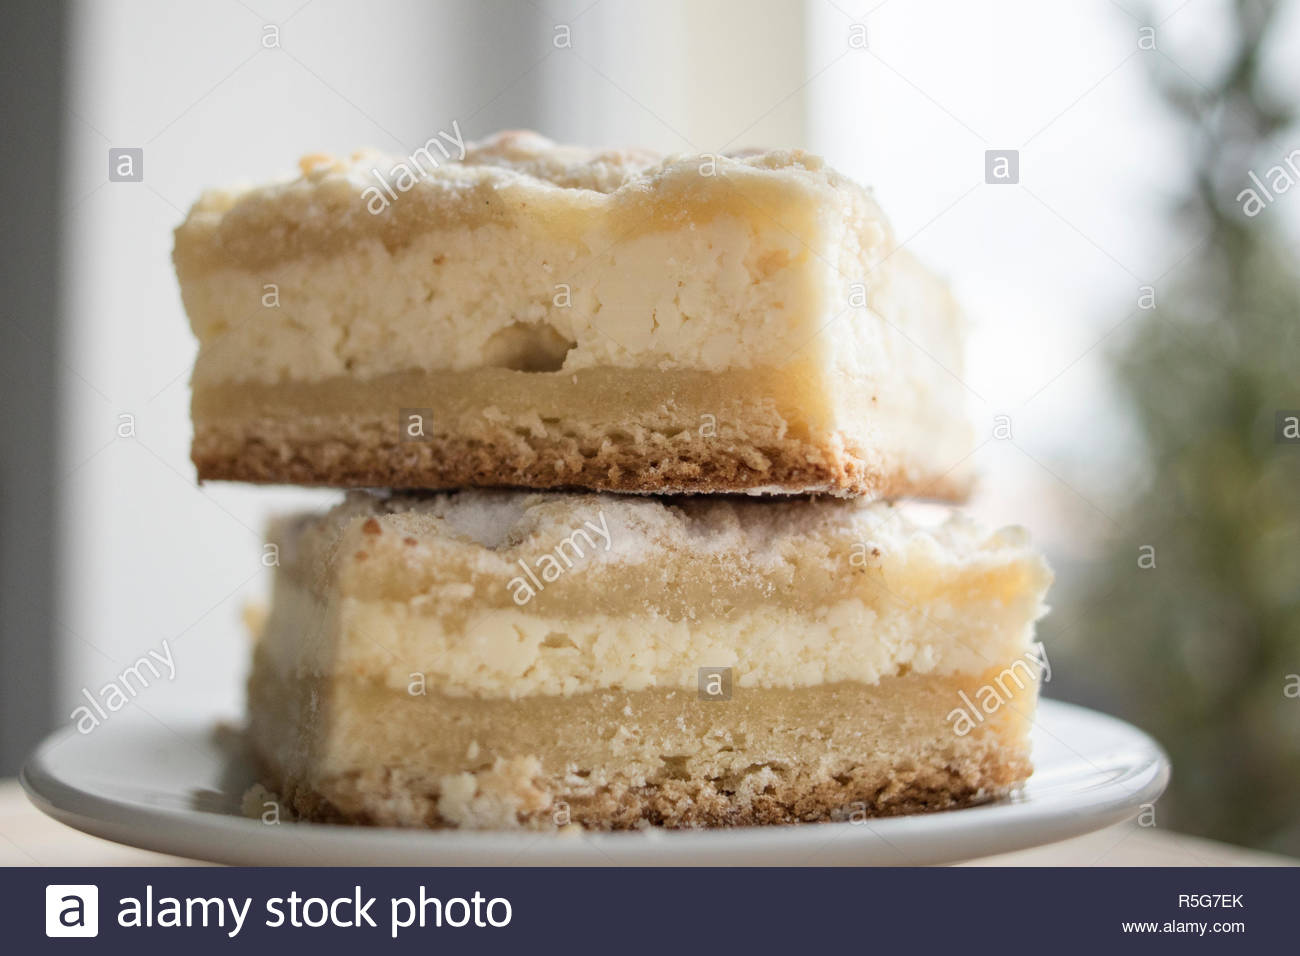 Two pieces of cheese pie on a plate in side view. Stock Photo